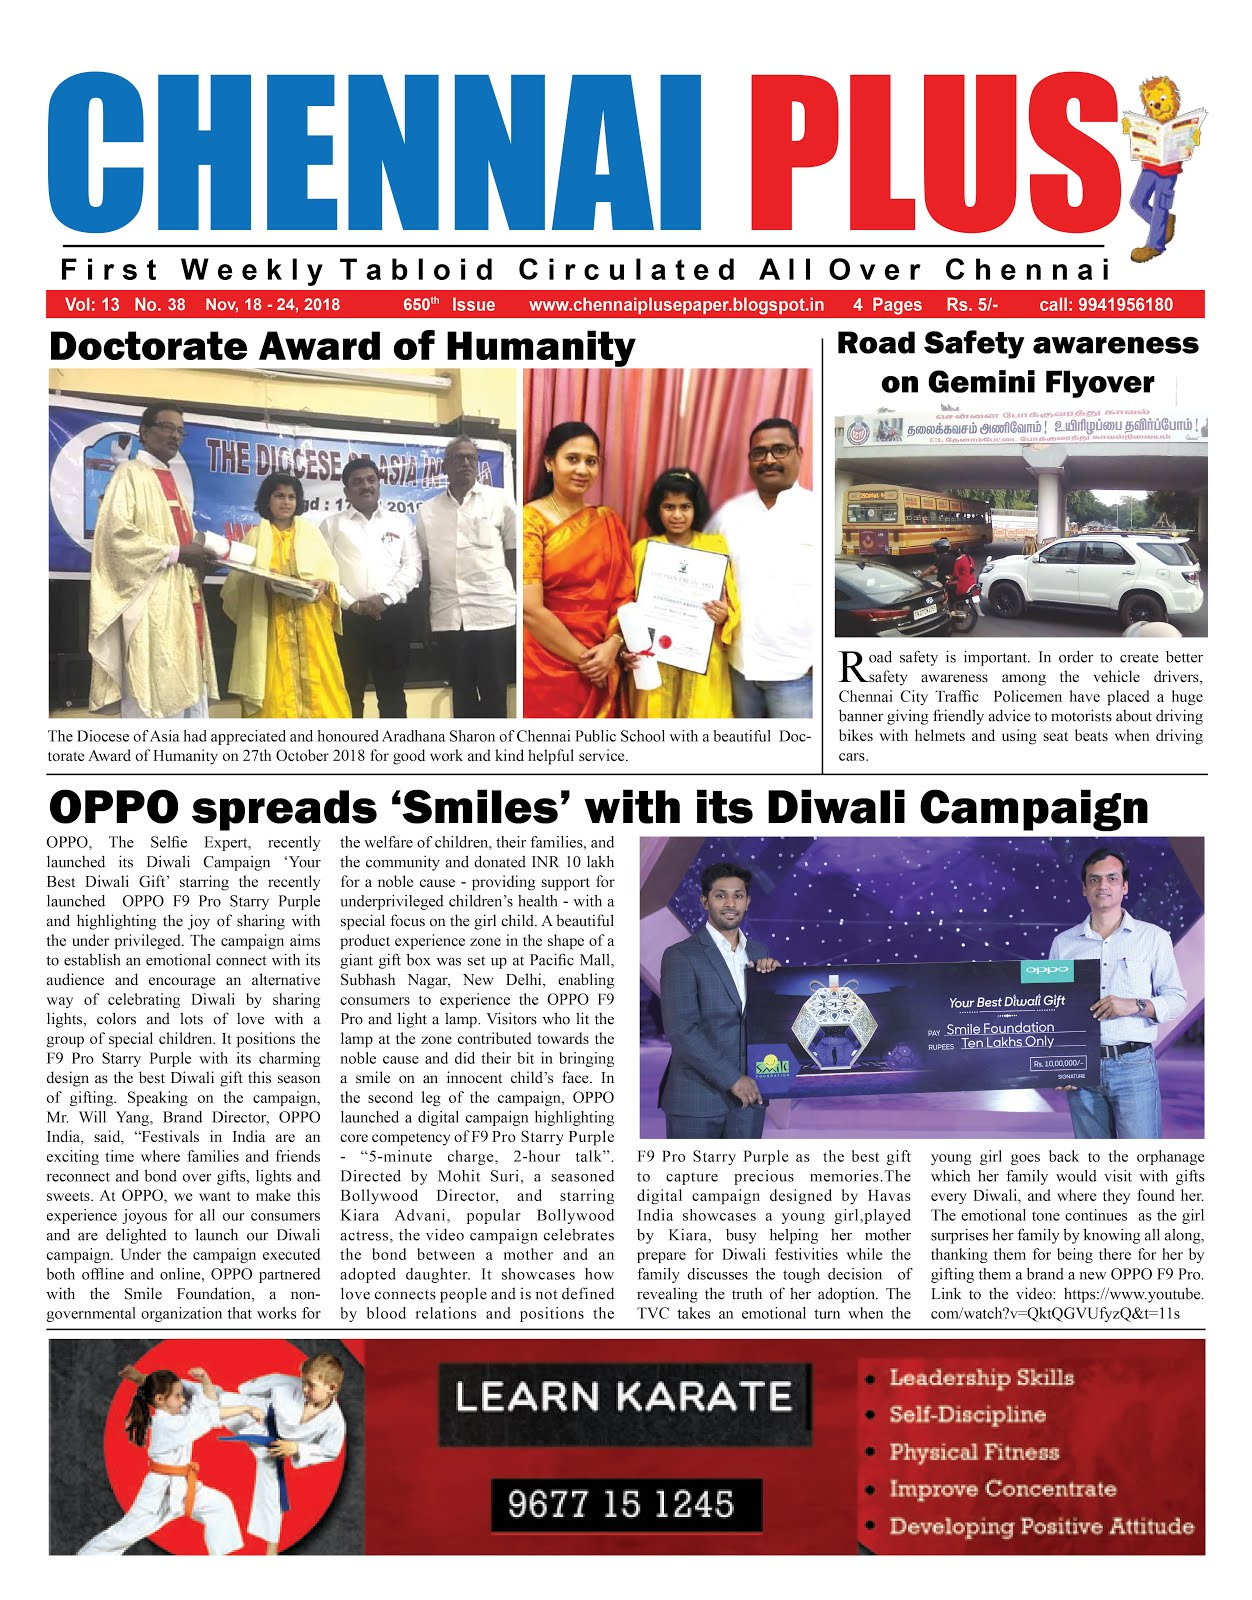 Chennai Plus_18.11.2018_Issue